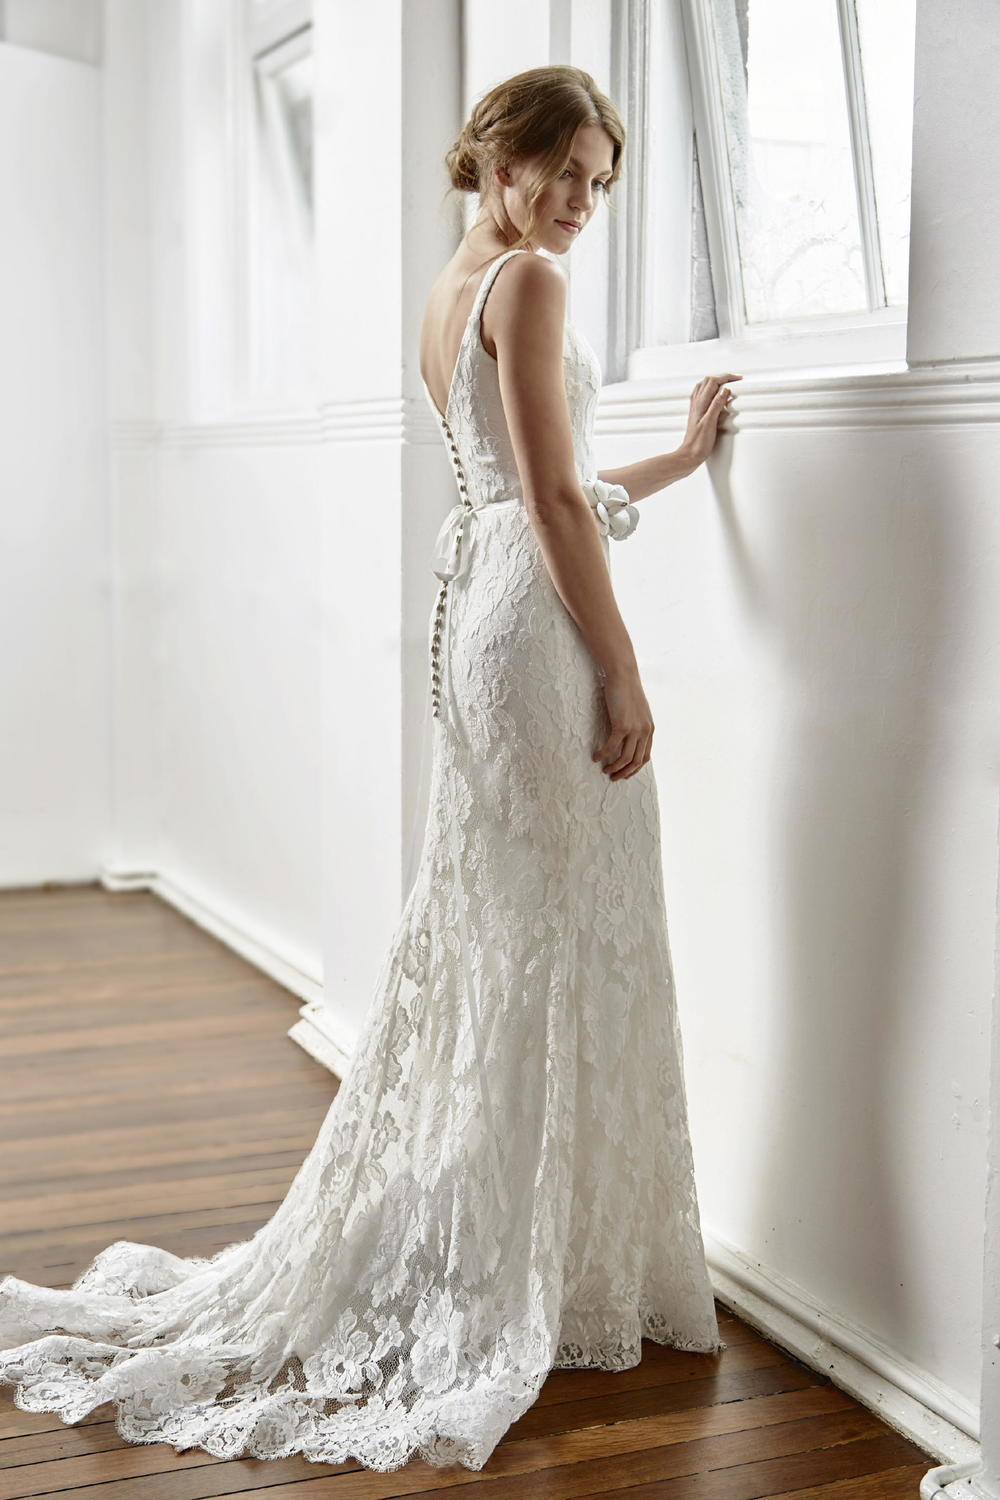 Vintage Lace Wedding Gowns Sydney : Tanya anic bridal designs real weddings s